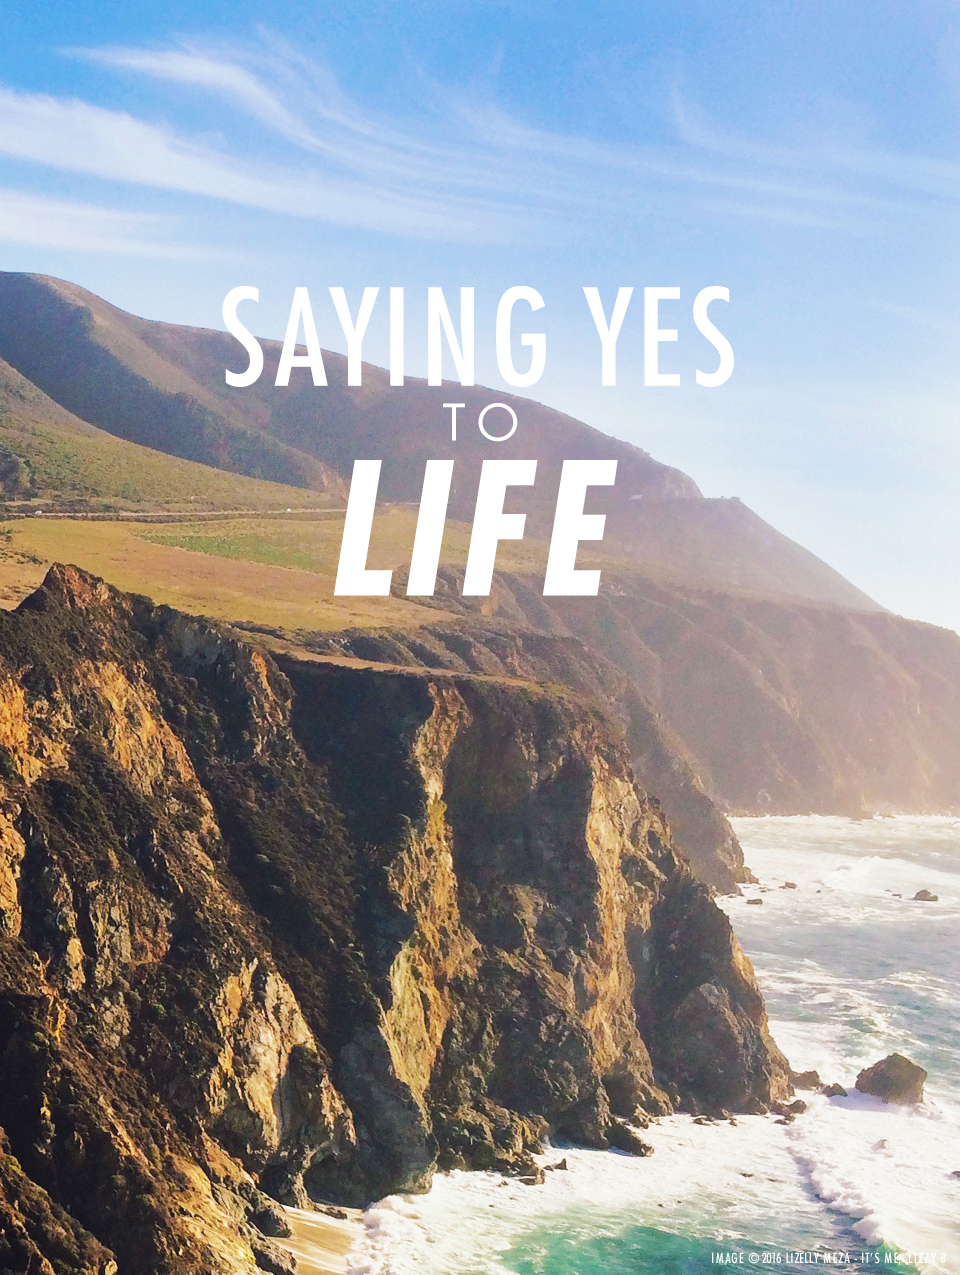 Saying Yes To Life Gives Great Surprises // It's Me, Lizzy B - Musings on Life, Business, & The Pursuit of Everyday Joy // Personal blog of Lizelly Meza from Lizzy B Loves